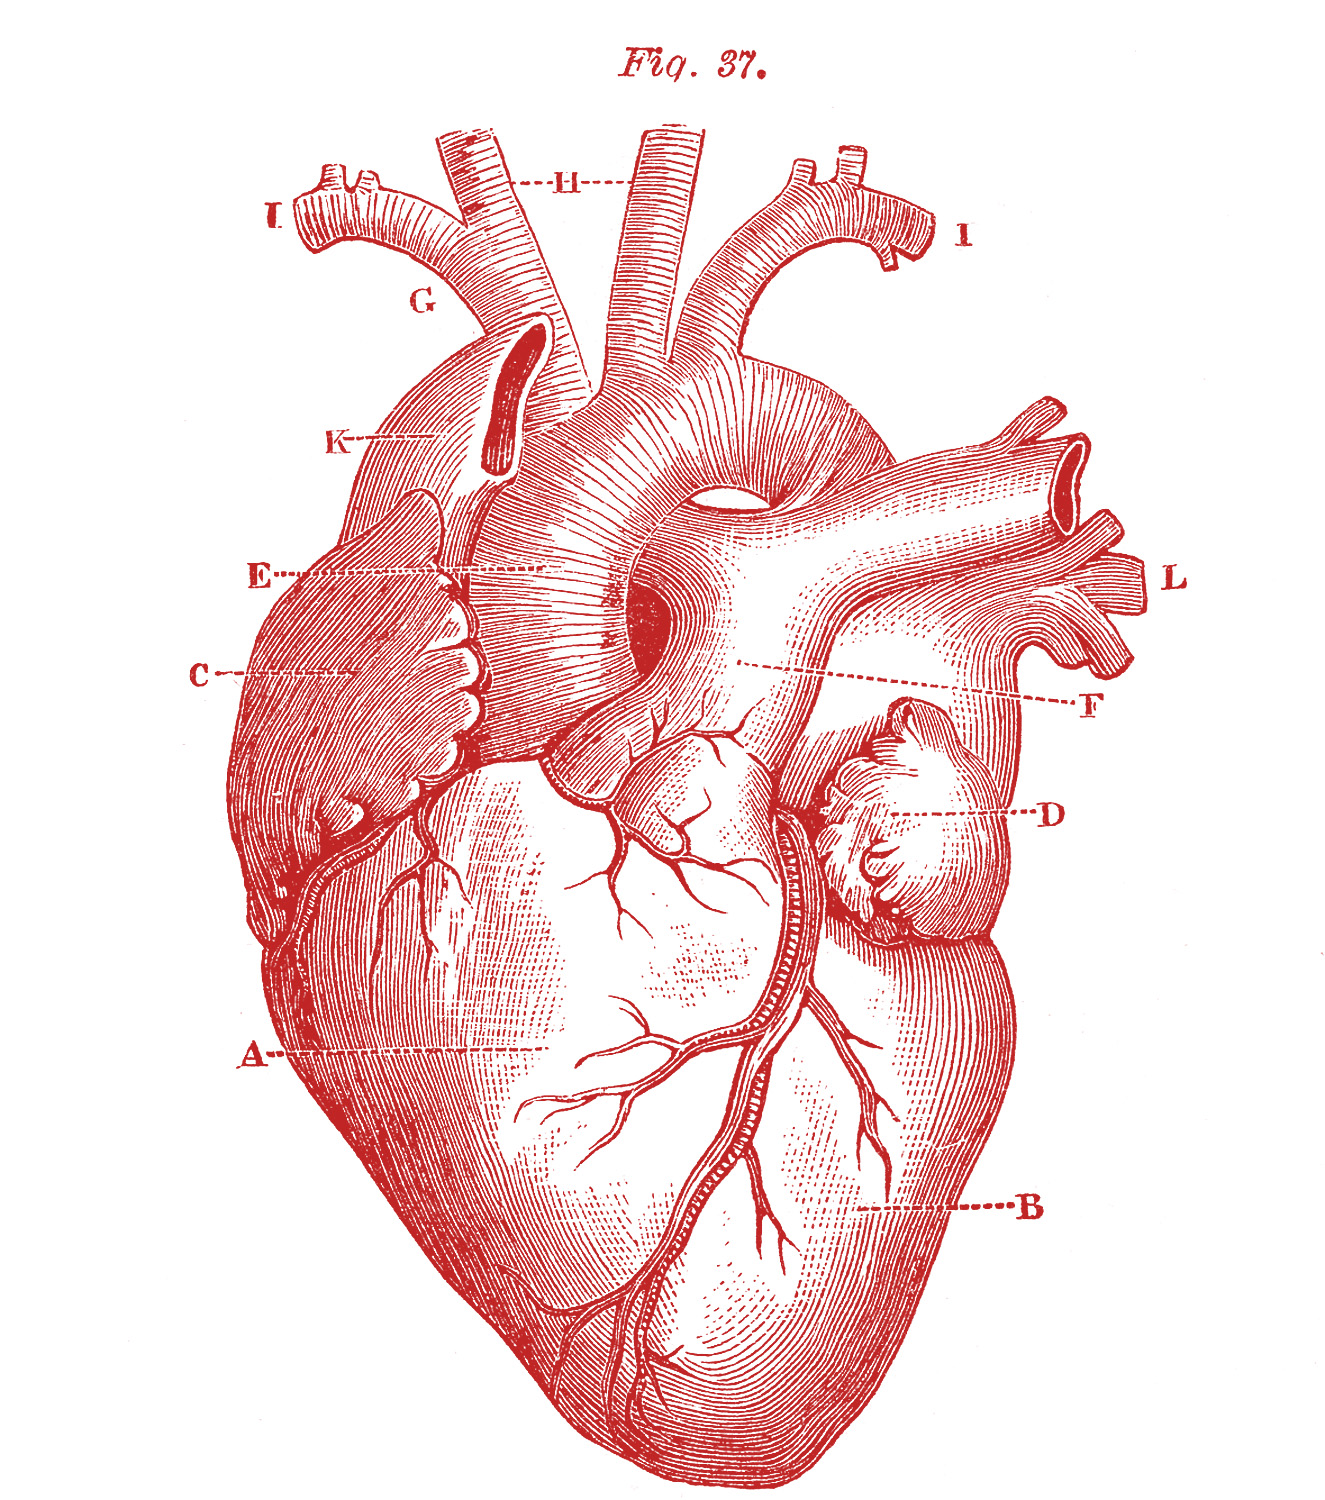 Free Download 5 Anatomical Heart Pictures The Graphics Fairy